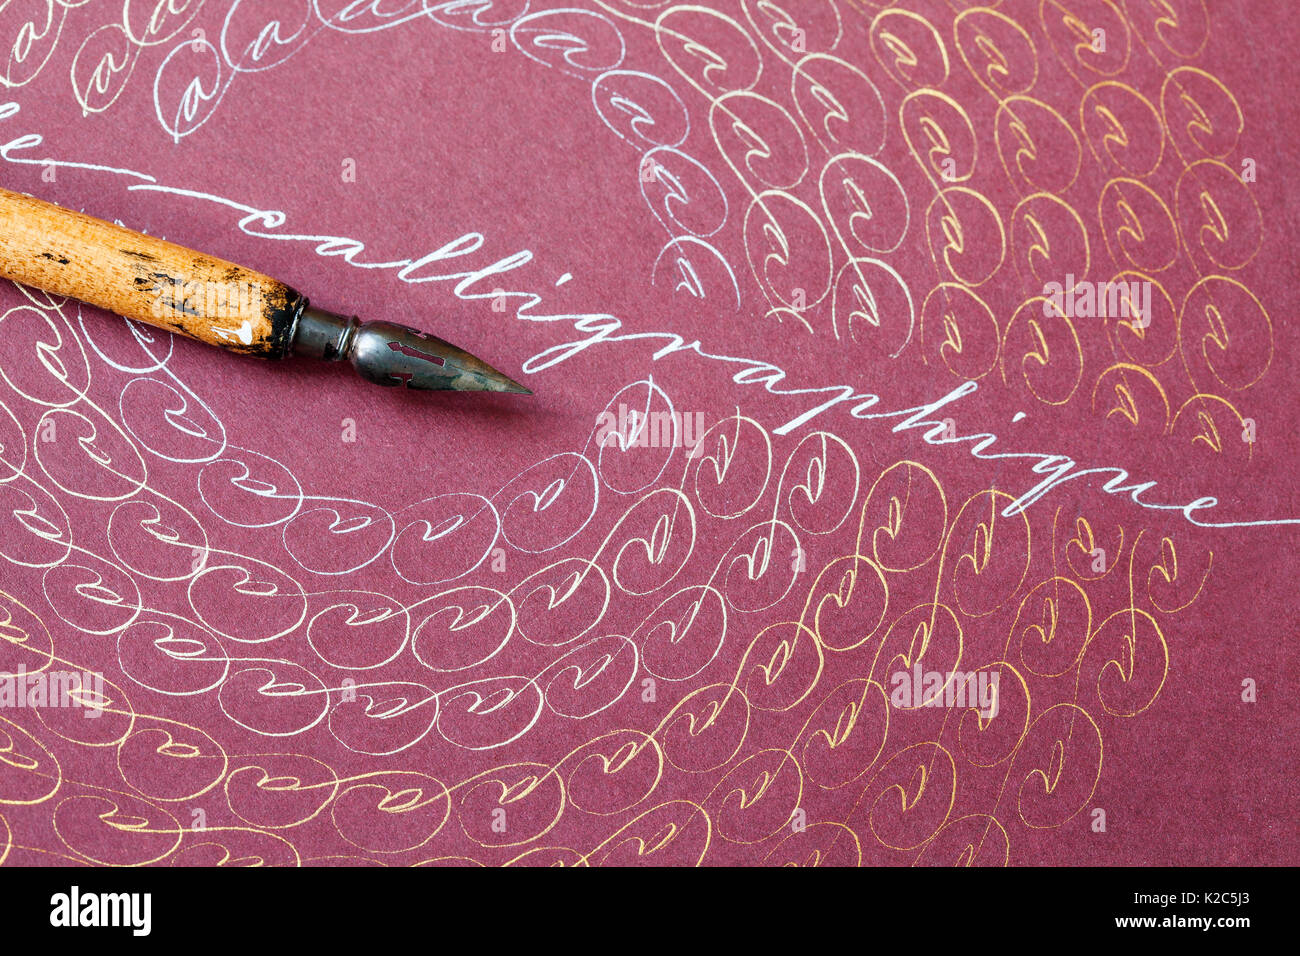 Aged fountain pen, artistic frame with letters A. Word Calligraphique concept. bronze silver ink. pink paper background. macro view, shallow depth of field - Stock Image